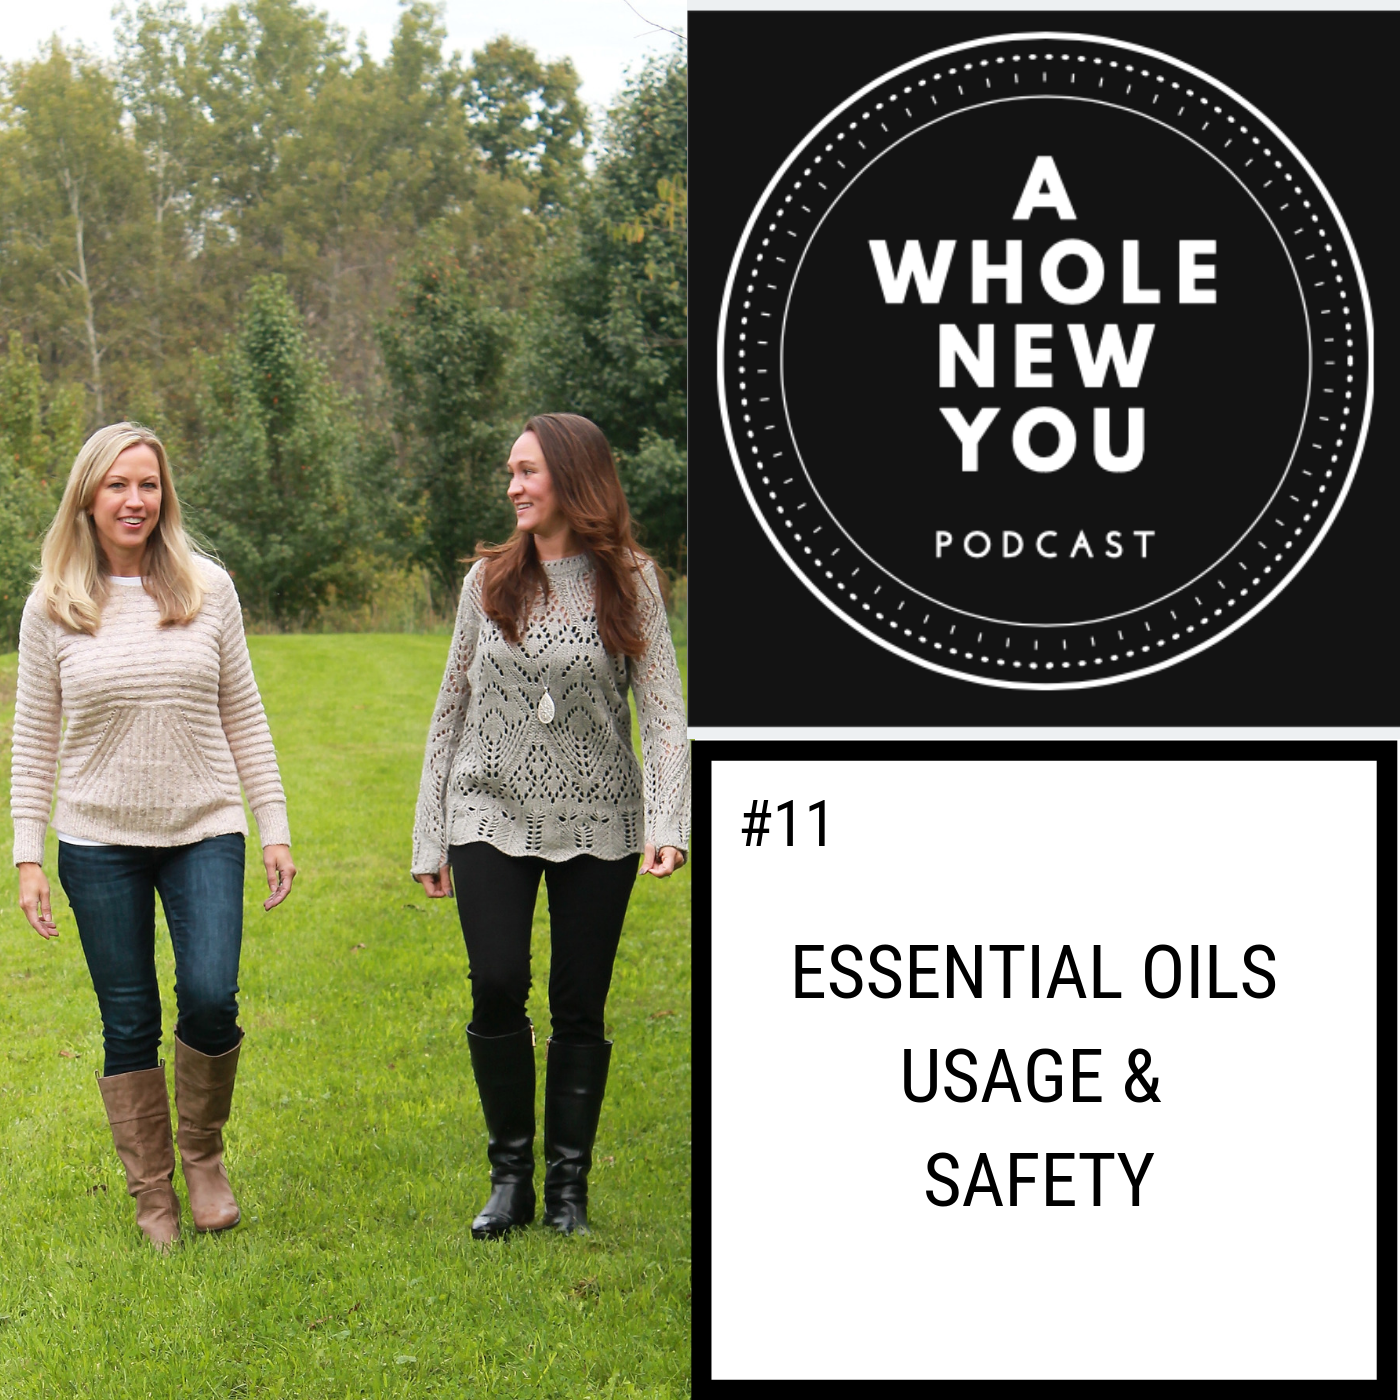 essential oils, safety, usage, dilution, hot oils, photosensitive oils, sensitivity, neat oils, diffusing, oral/internal oils, doTerra